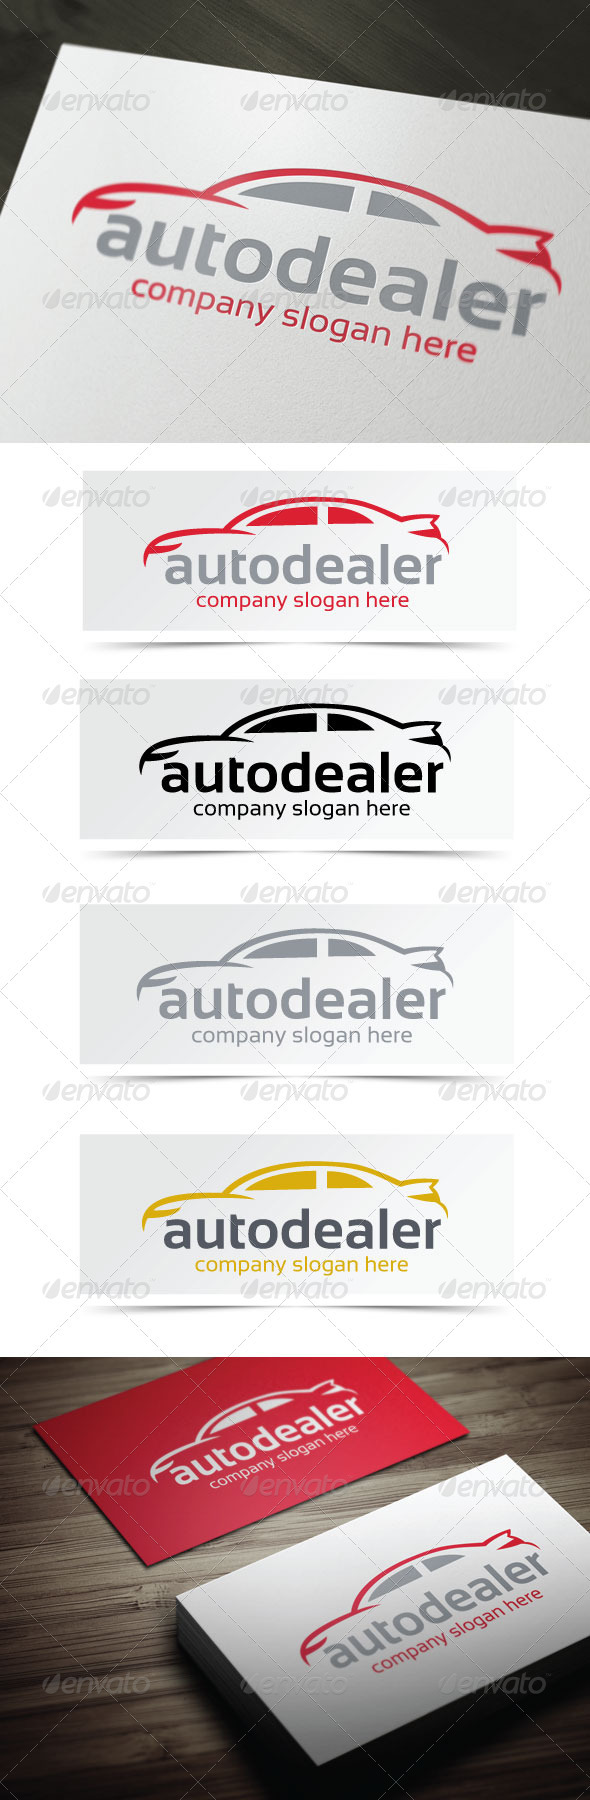 Auto Dealer - Objects Logo Templates